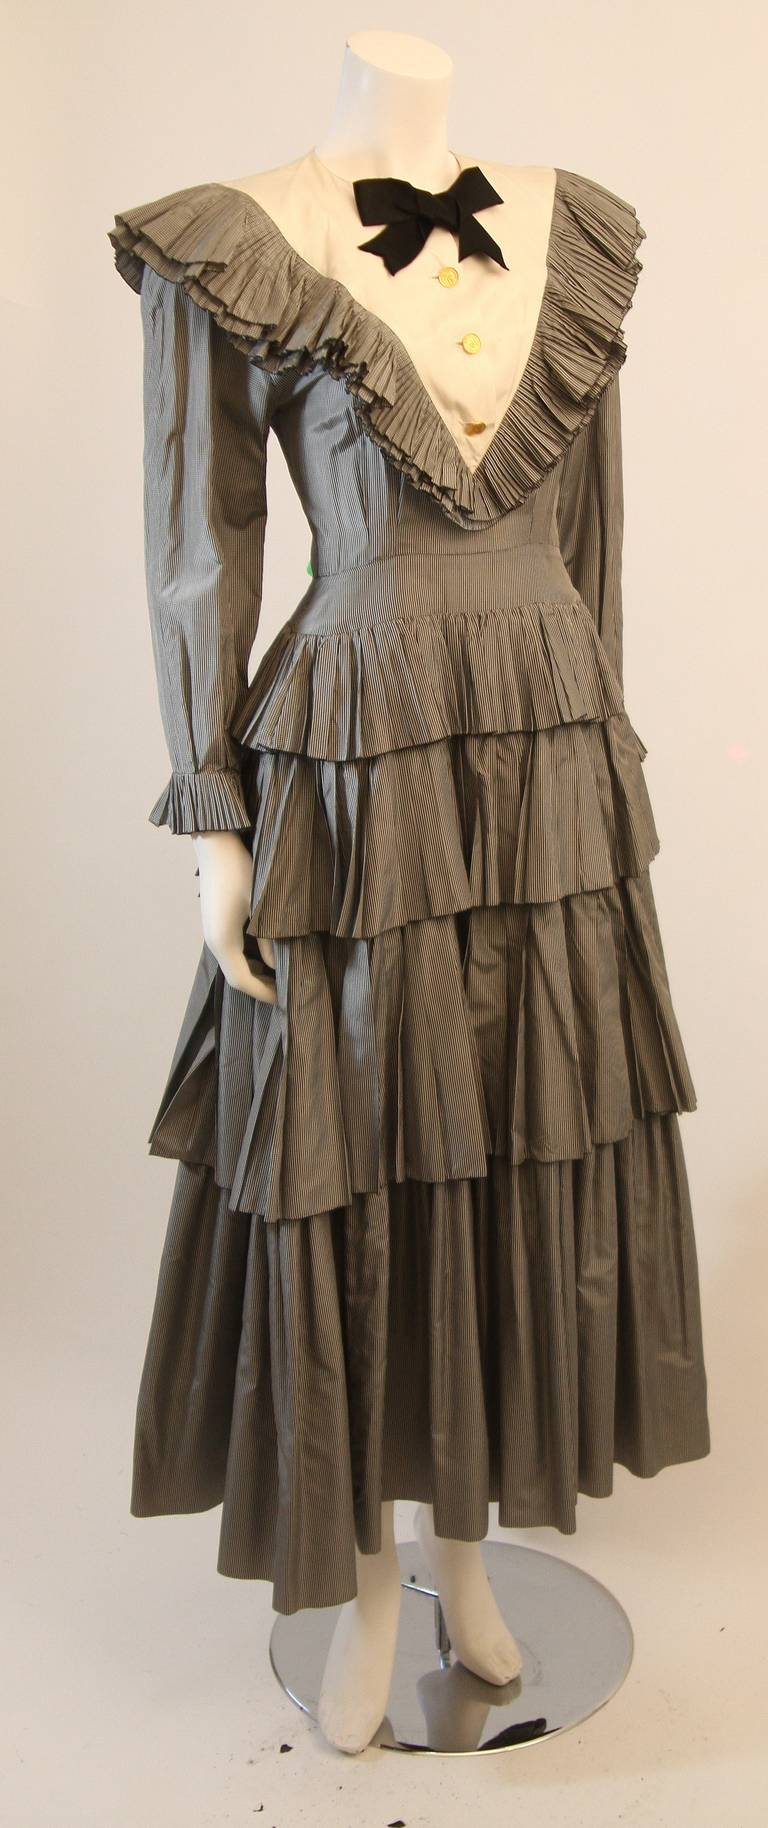 Chanel Edwardian Tiered Ruffle Gingham Gown with Black Bow 4